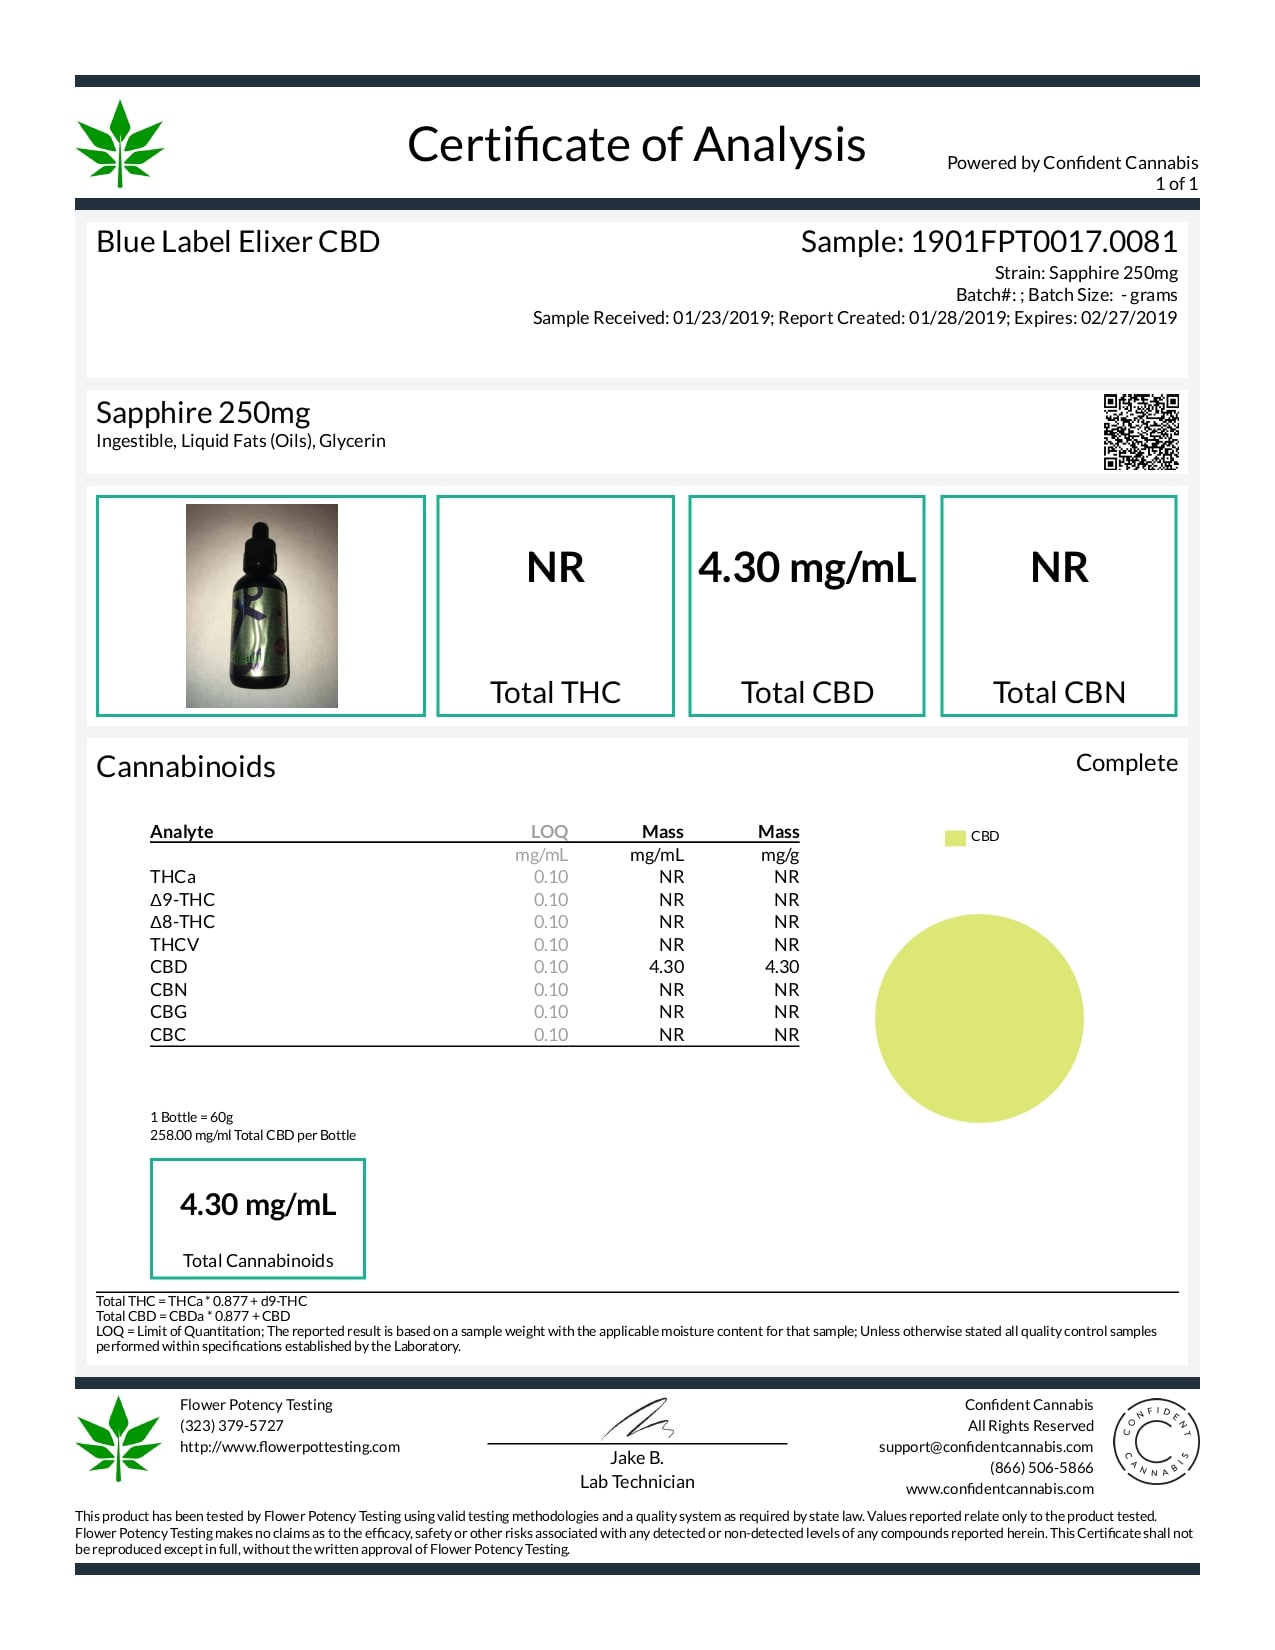 Blue Label CBD Vape Juice Sapphire 250mg Lab Report